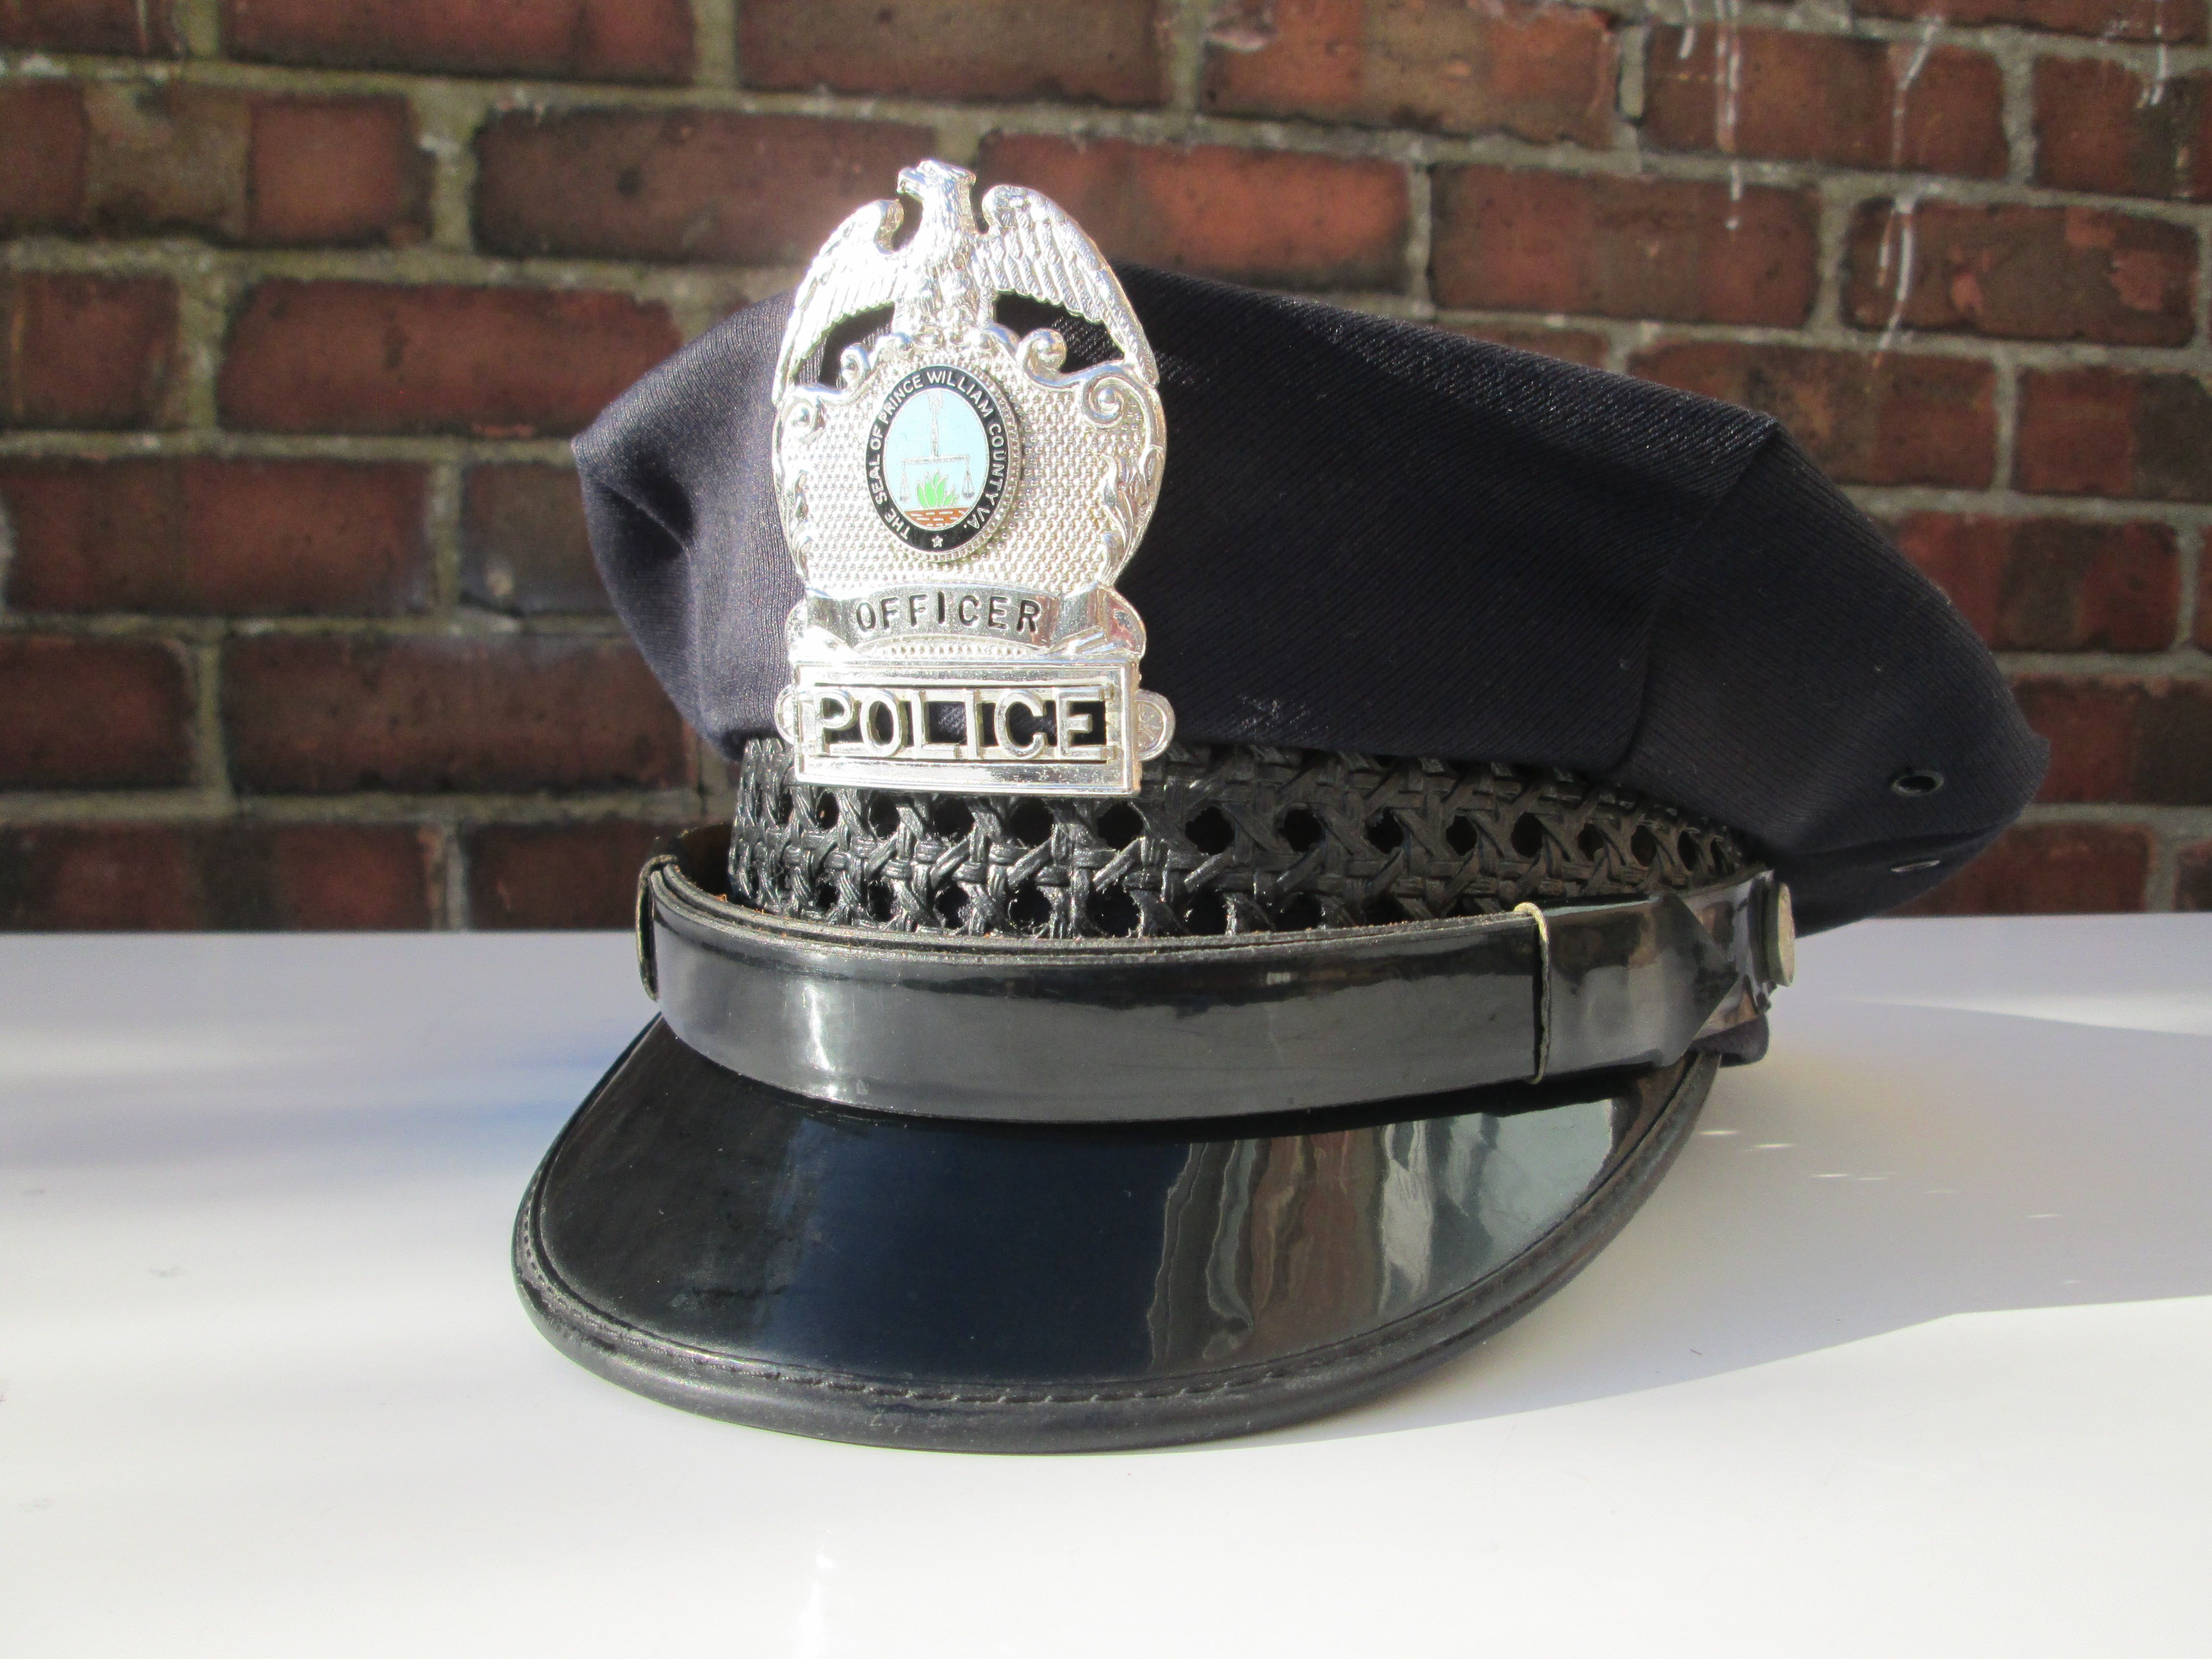 Prince William County Police Hat Police Hat Unique Items Products Mid Century Vintage